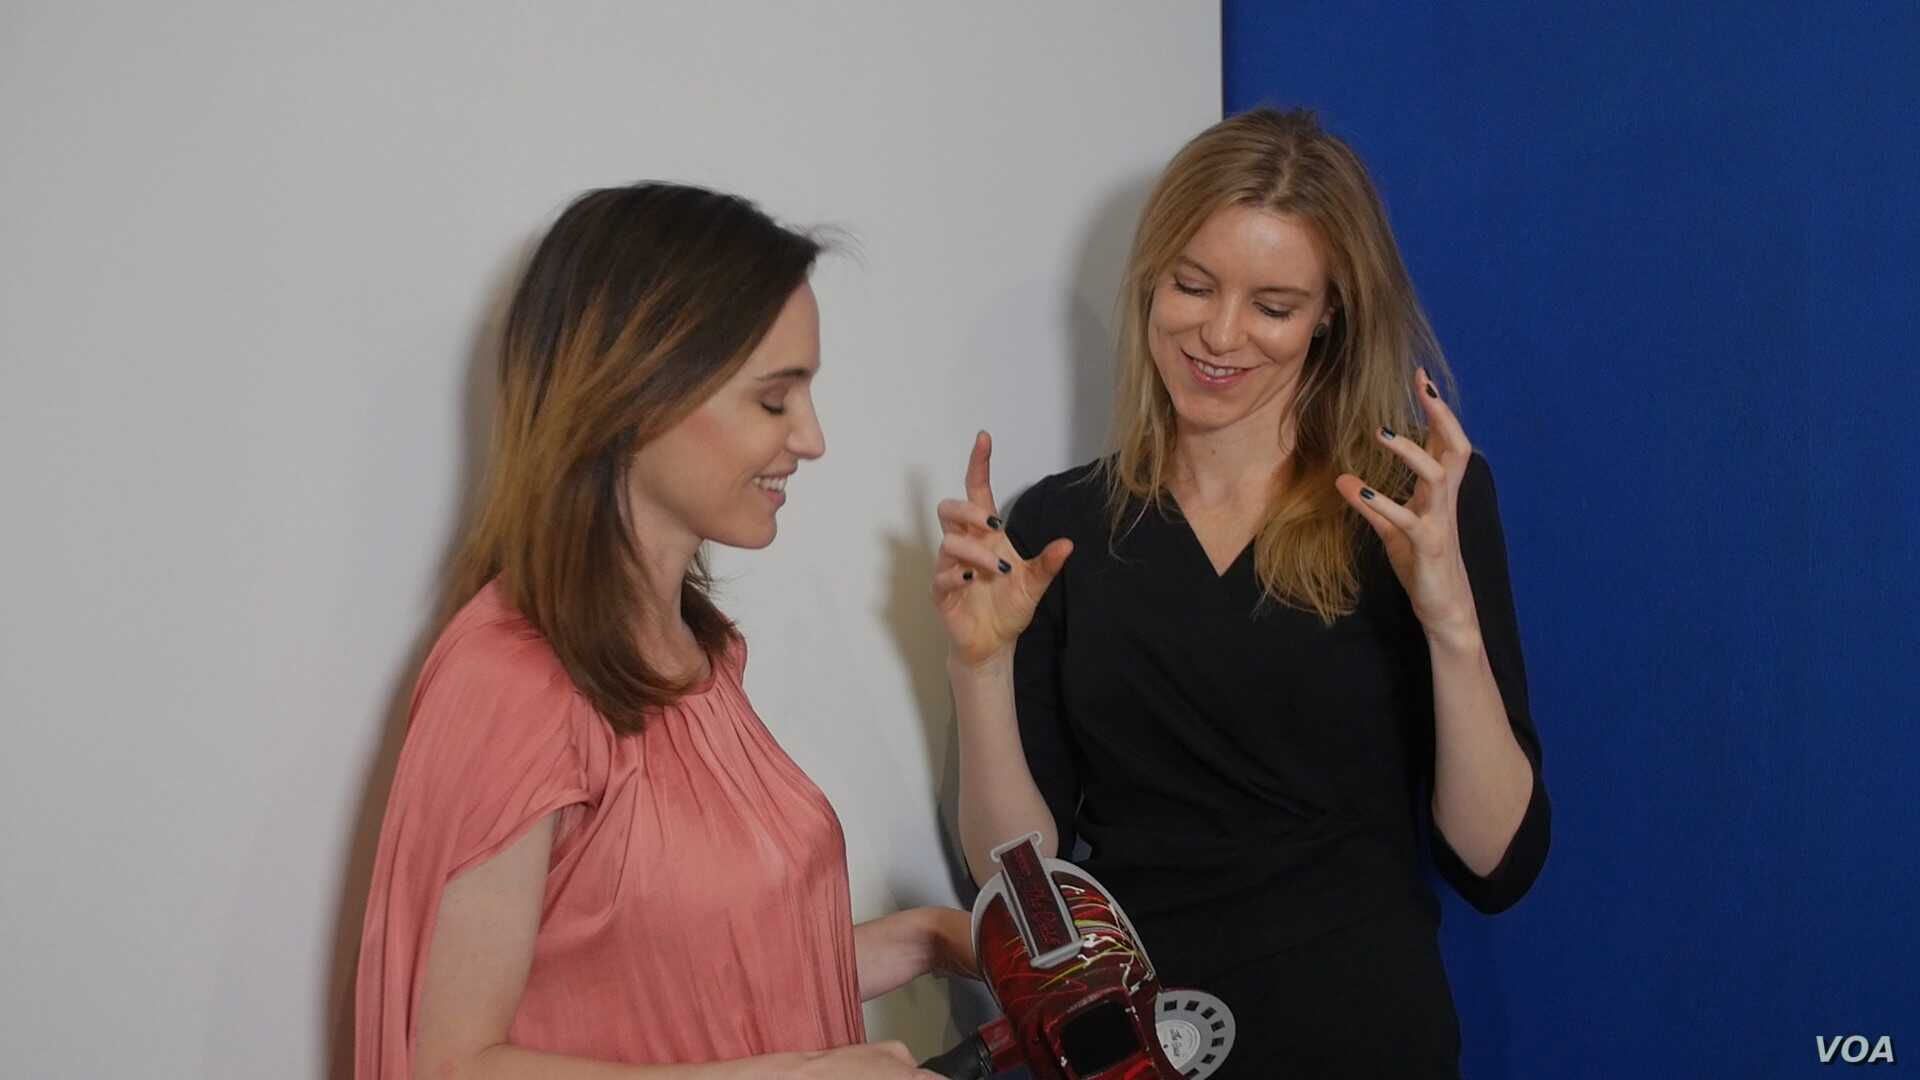 Toybox co-founders Arlene Mulder and Kanina Foss say their tech innovation project aims to link Africa's rich talents in art and innovation with the growing need for innovative technology in the developing world.